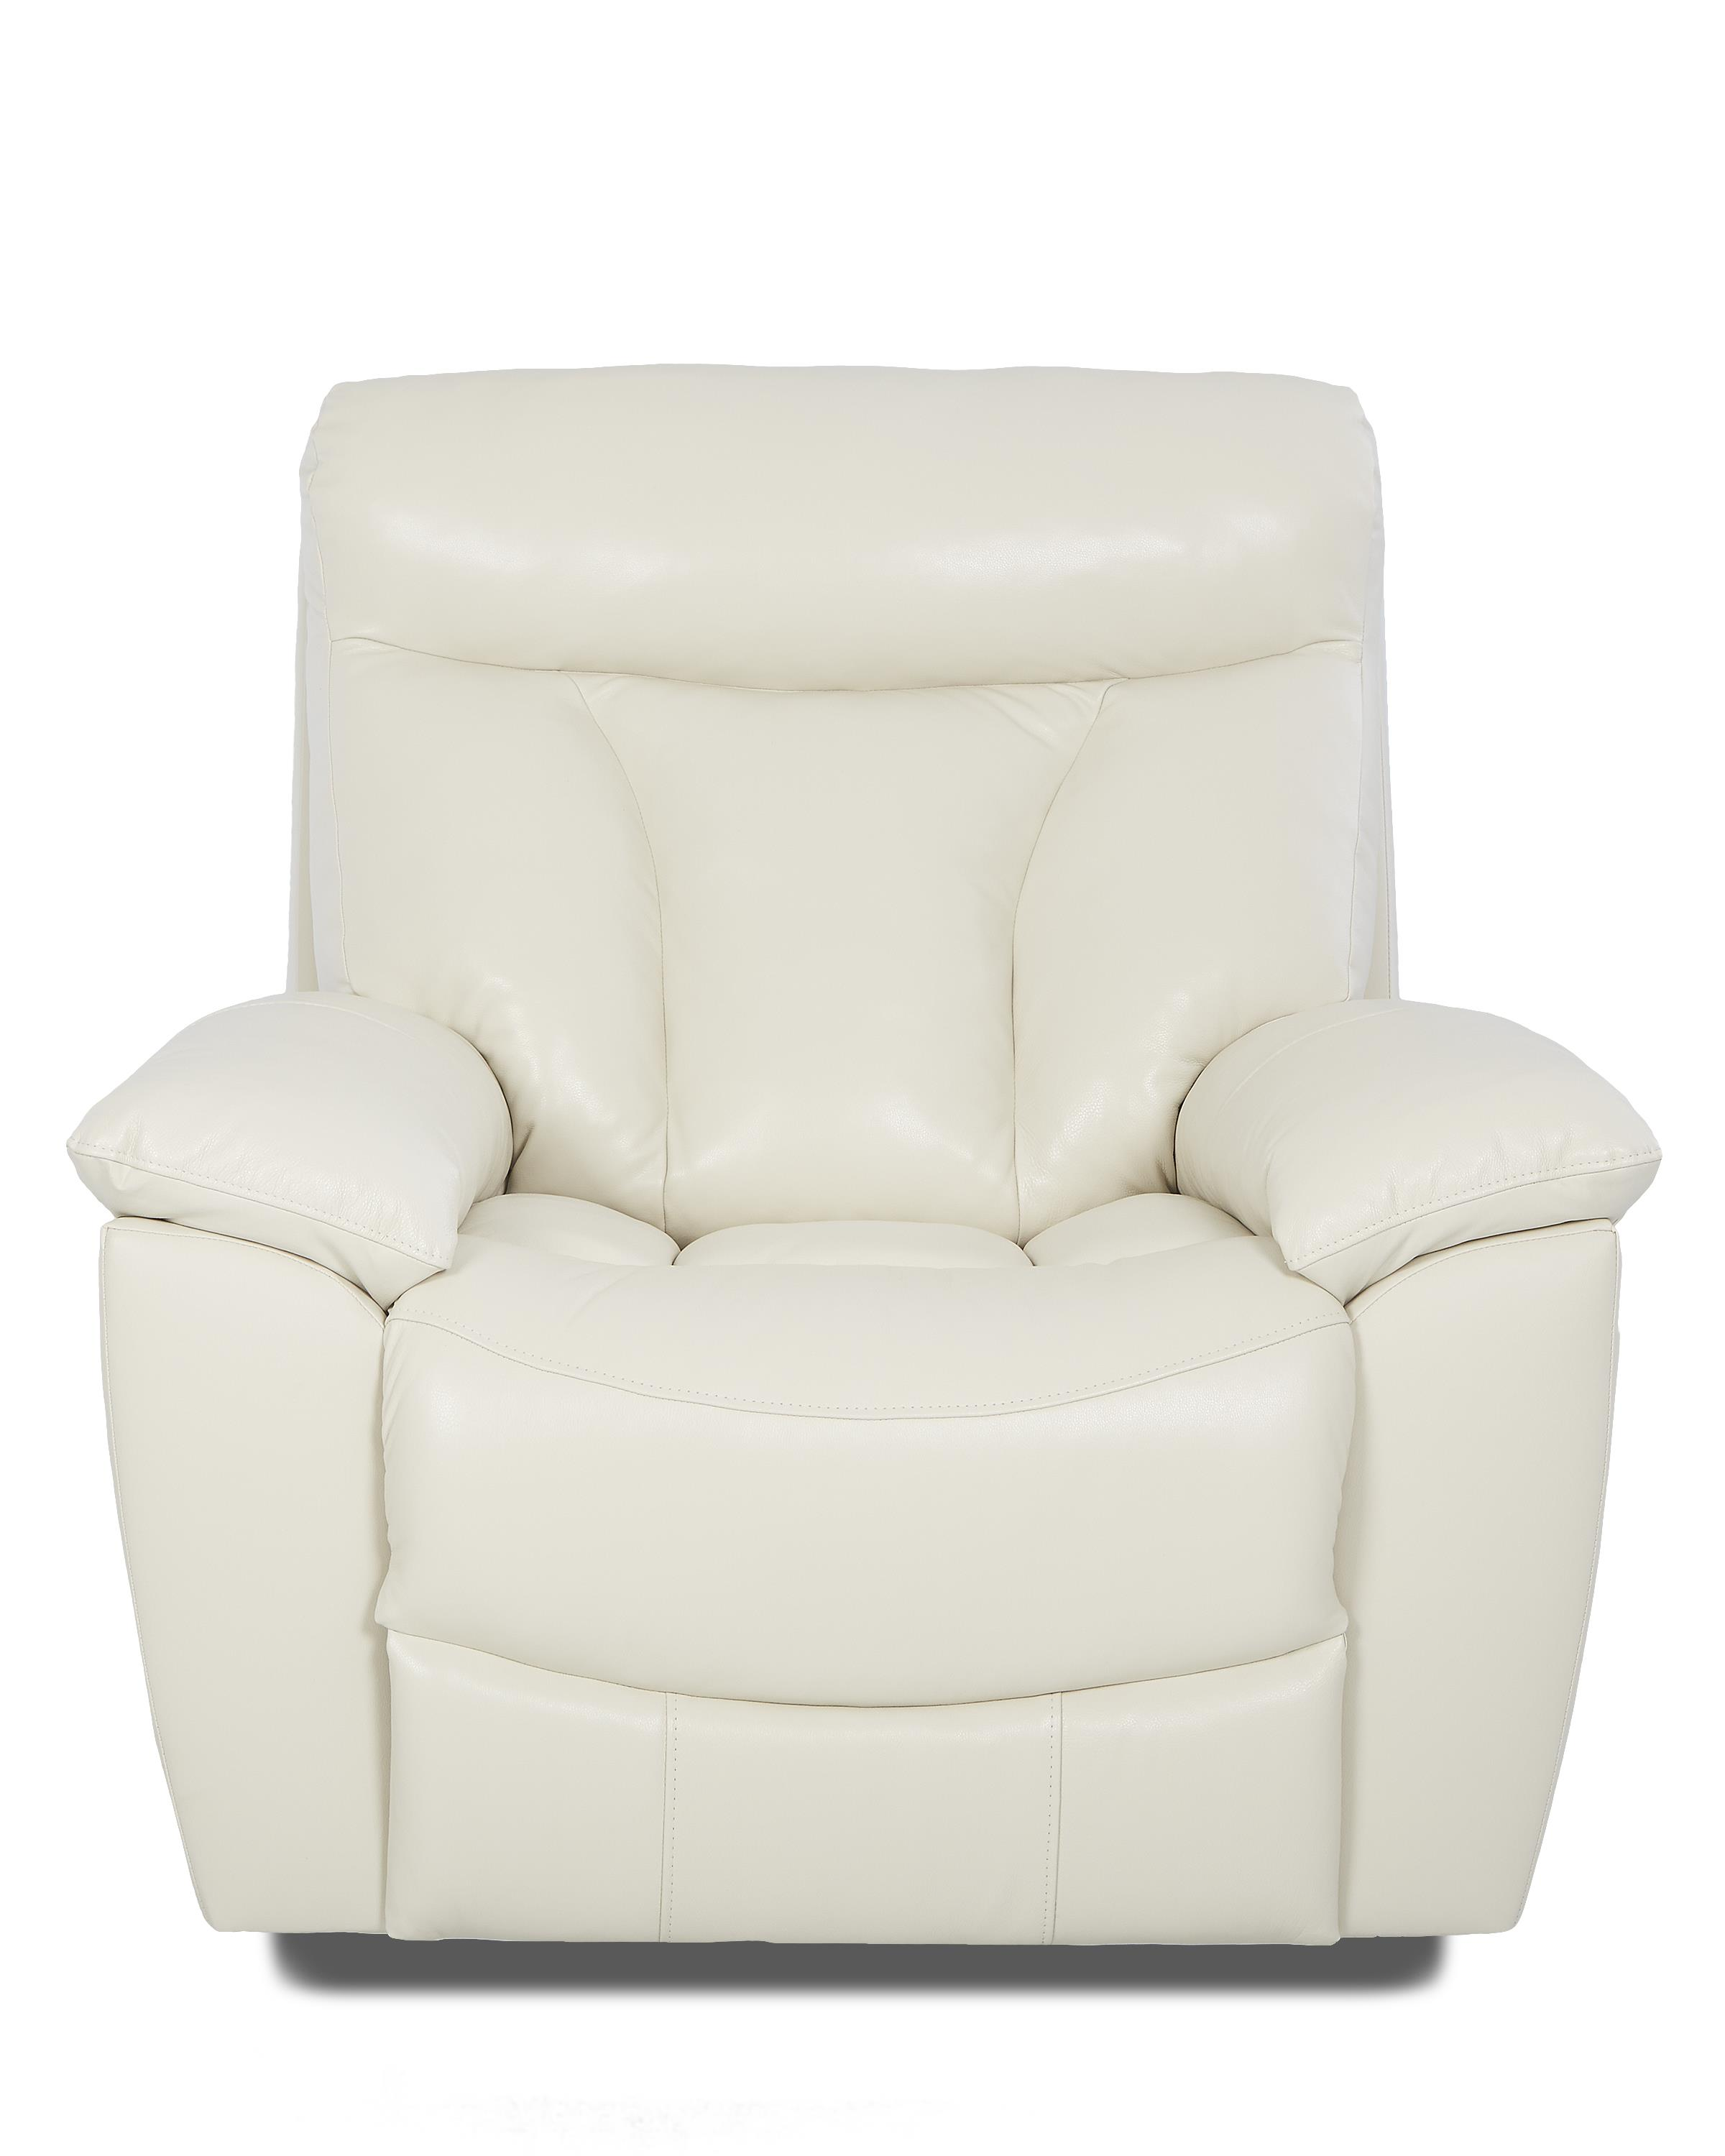 Deluxe Glider Recliner with Swivel by Klaussner at Johnny Janosik